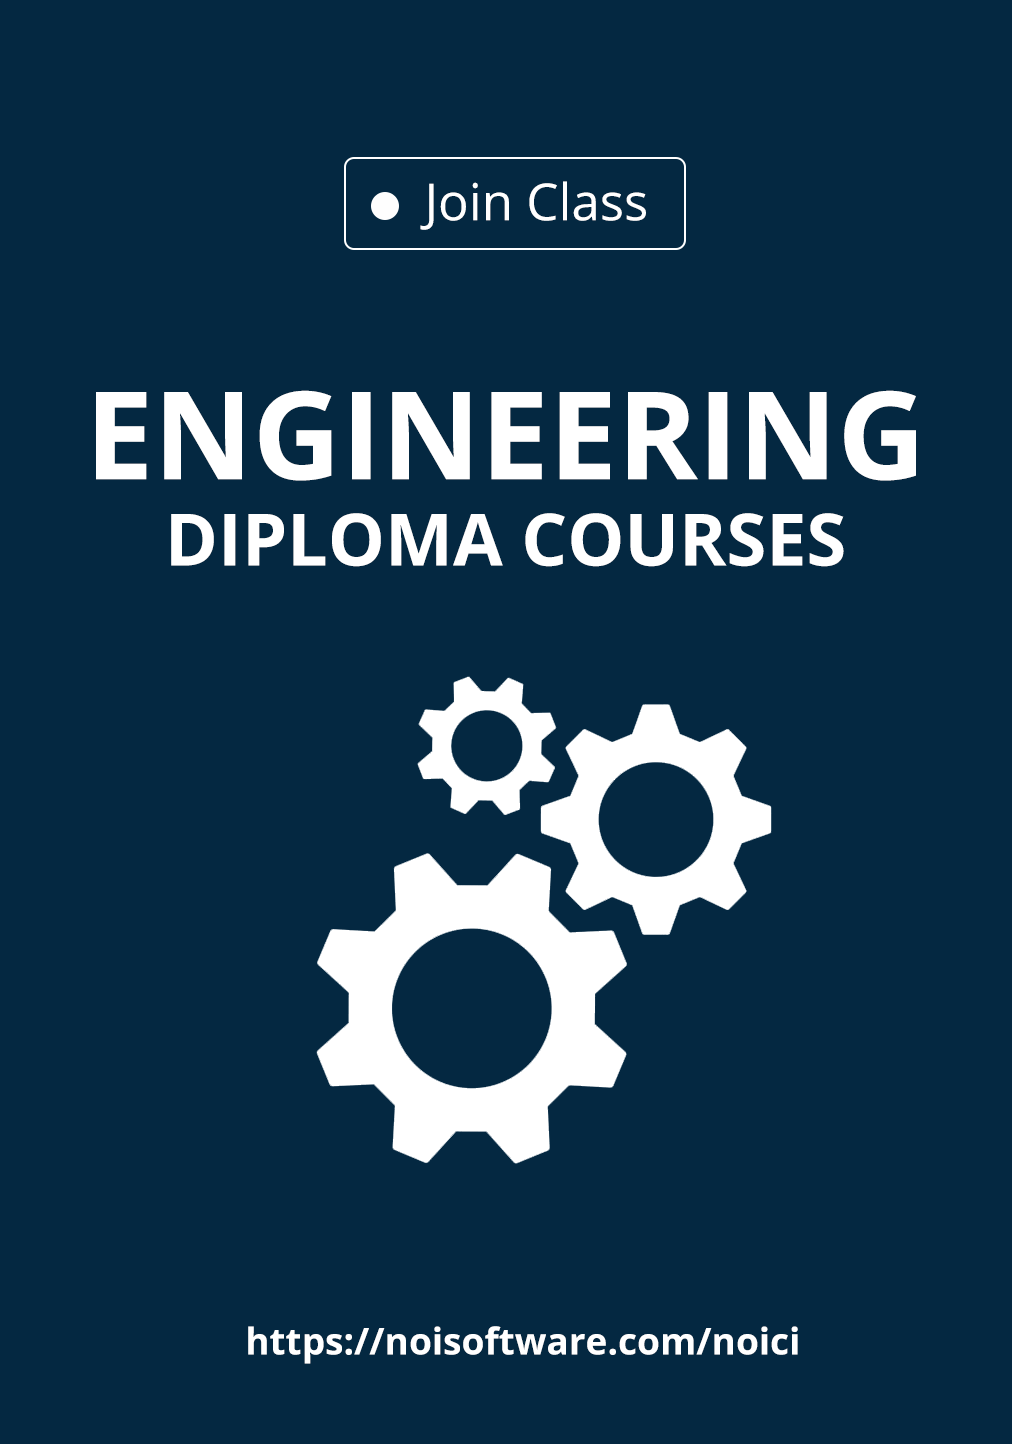 Diploma in Engineering Courses